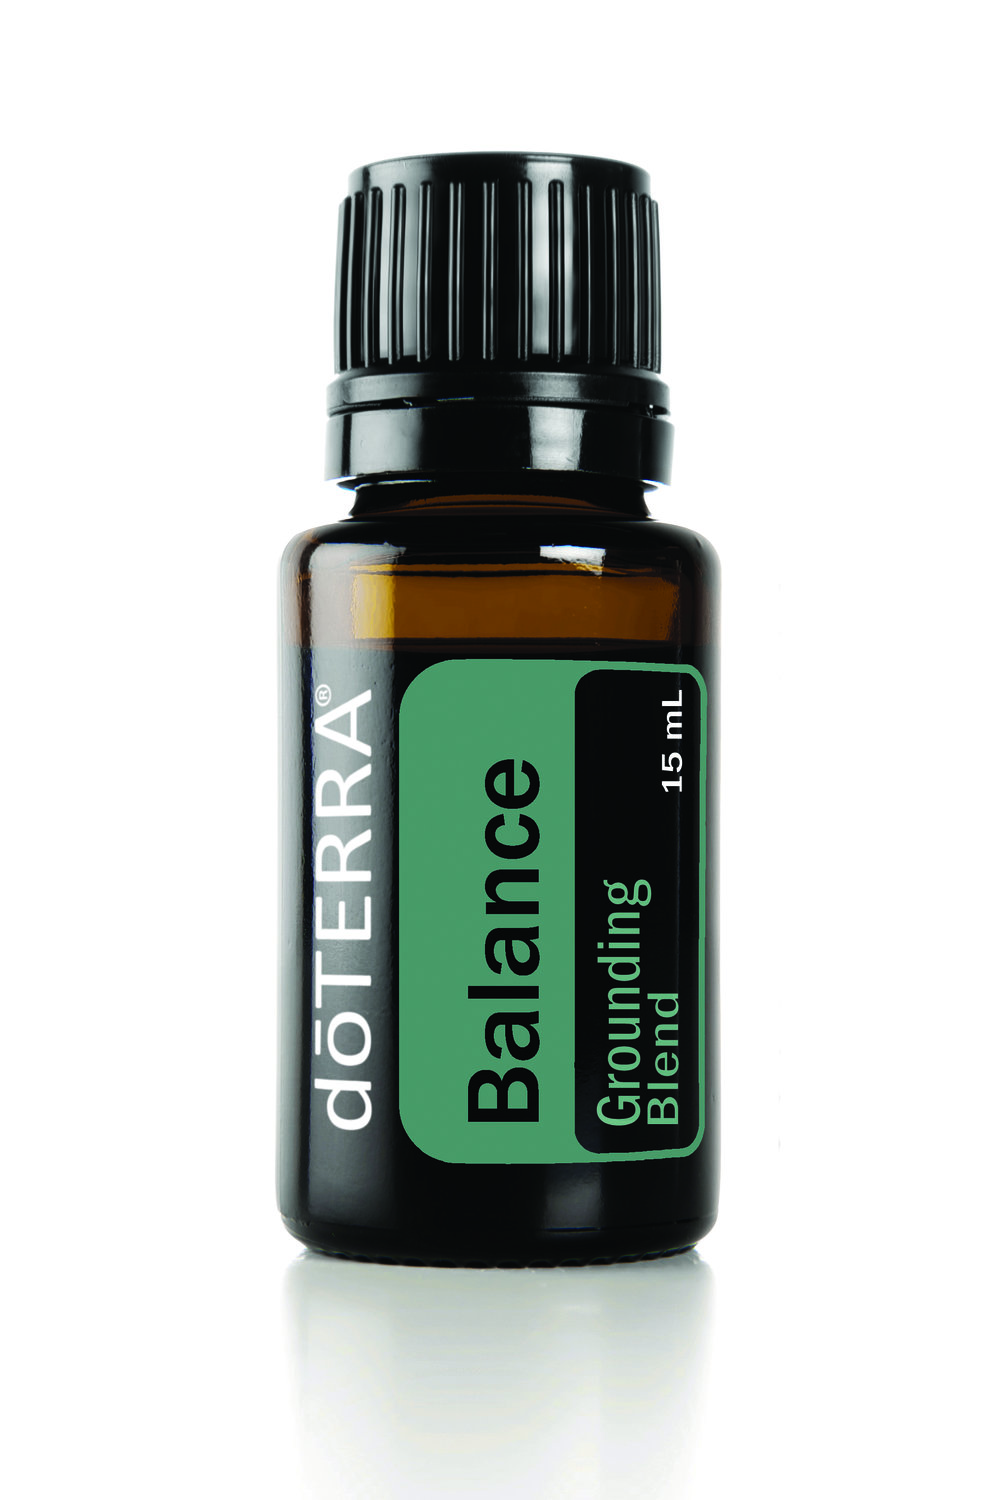 doTERRA's grounding blend, appropriately named doTERRA Balance, promotes tranquility while bringing harmony to the mind and body, and balance to the emotions. -